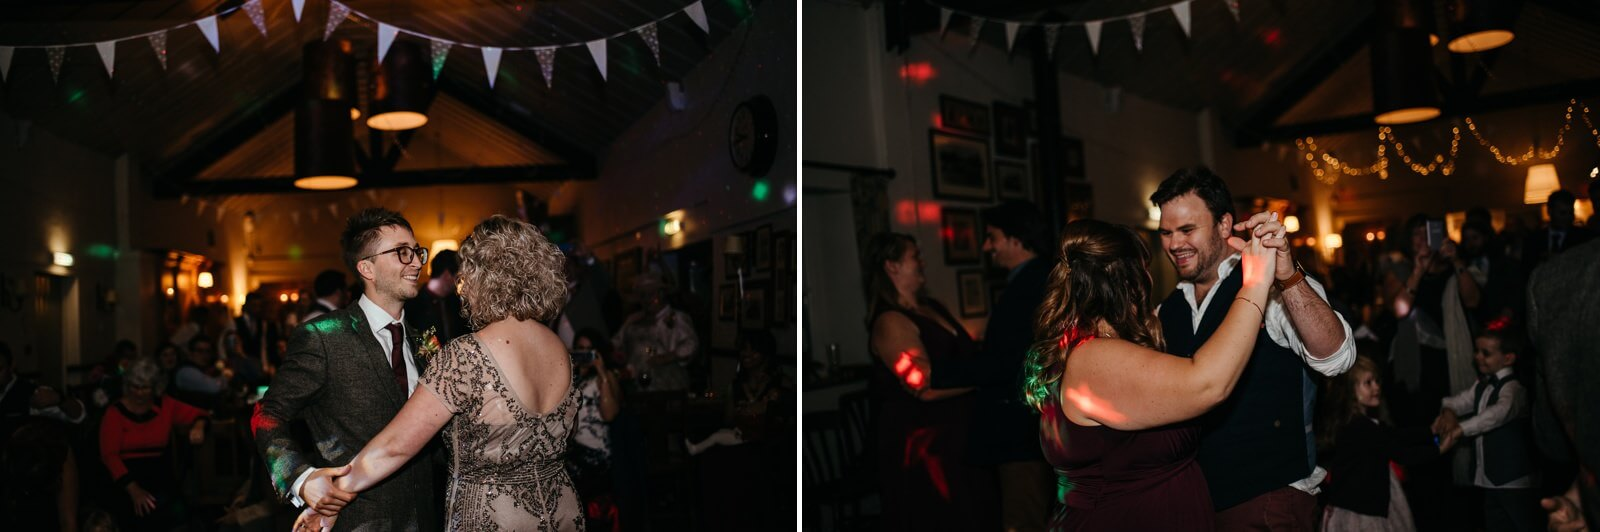 Bride and Groom and guests dancing at autumn halloween inspired wedding at Ty Mawr, Cardiff